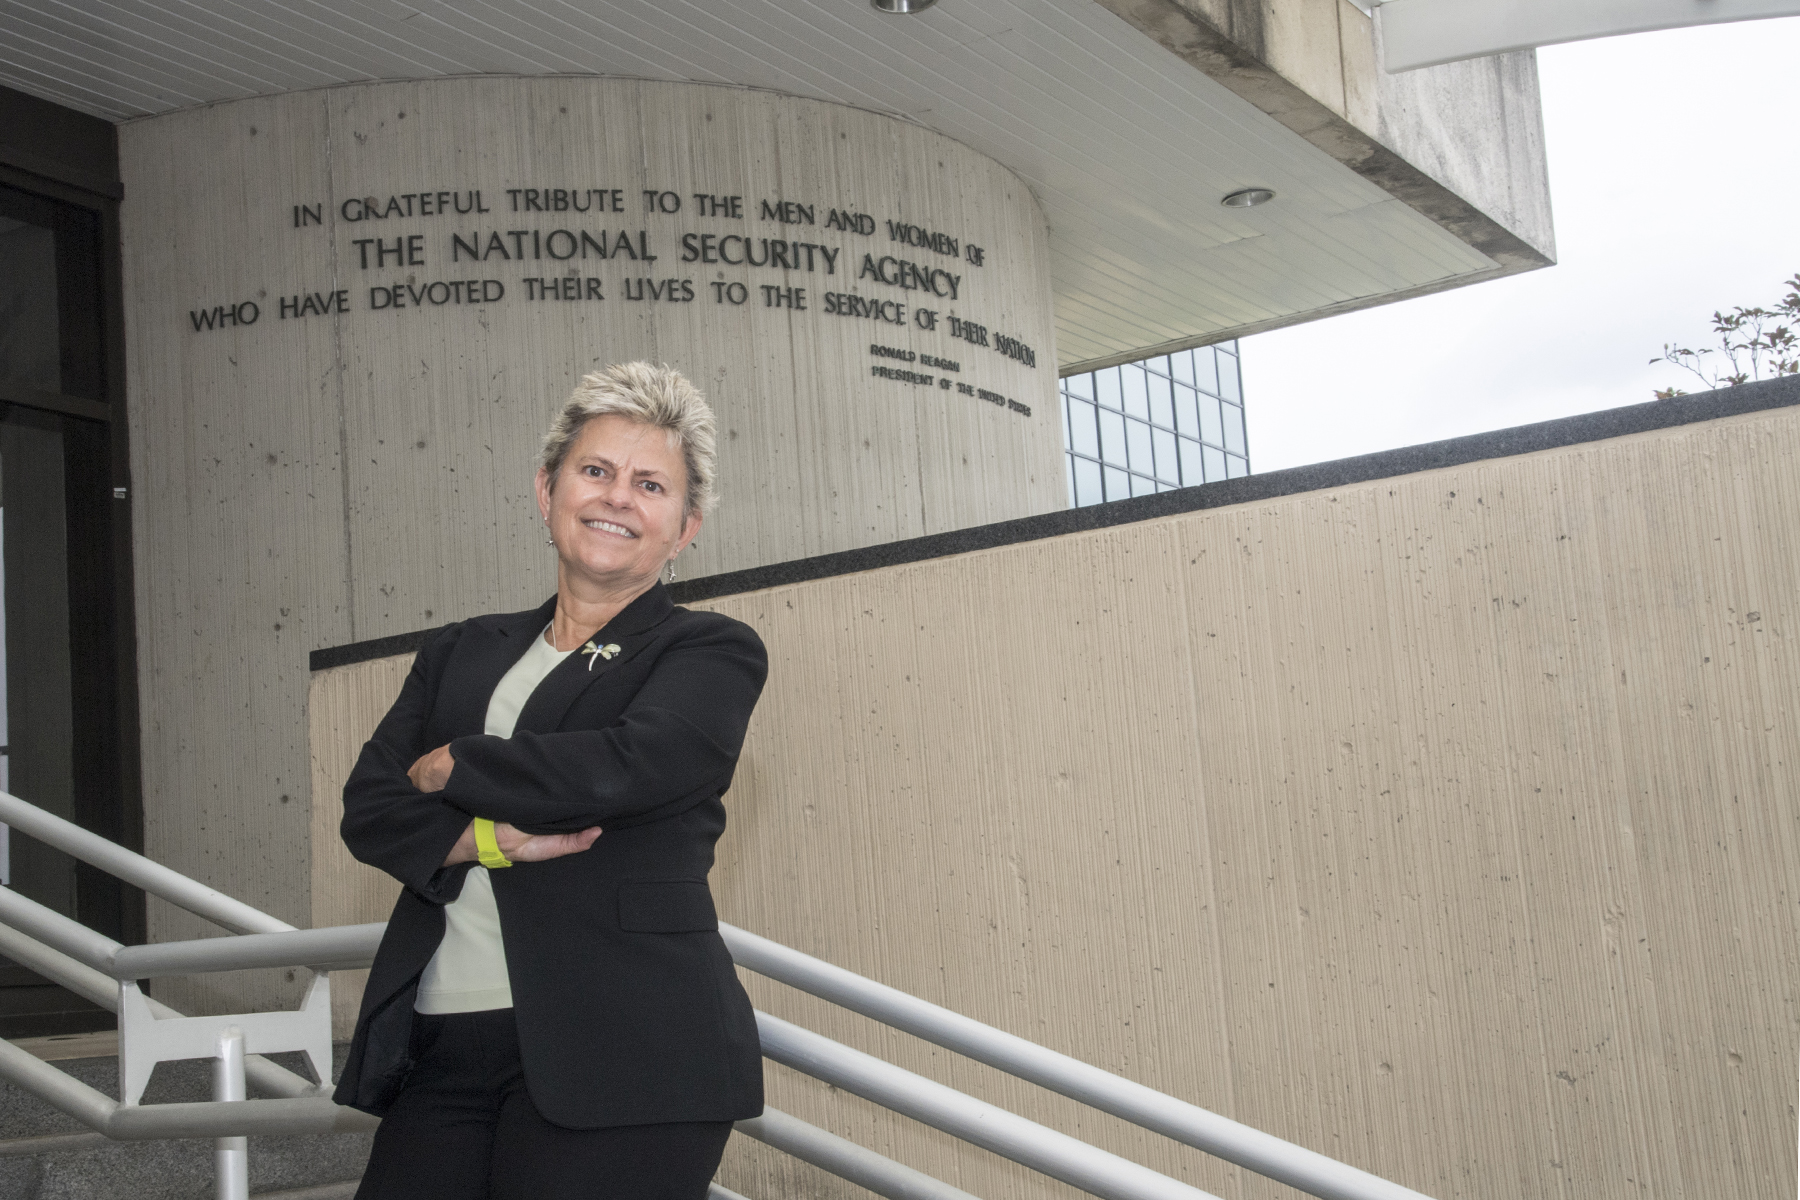 A Closer Look: Employee Profile > National Security Agency